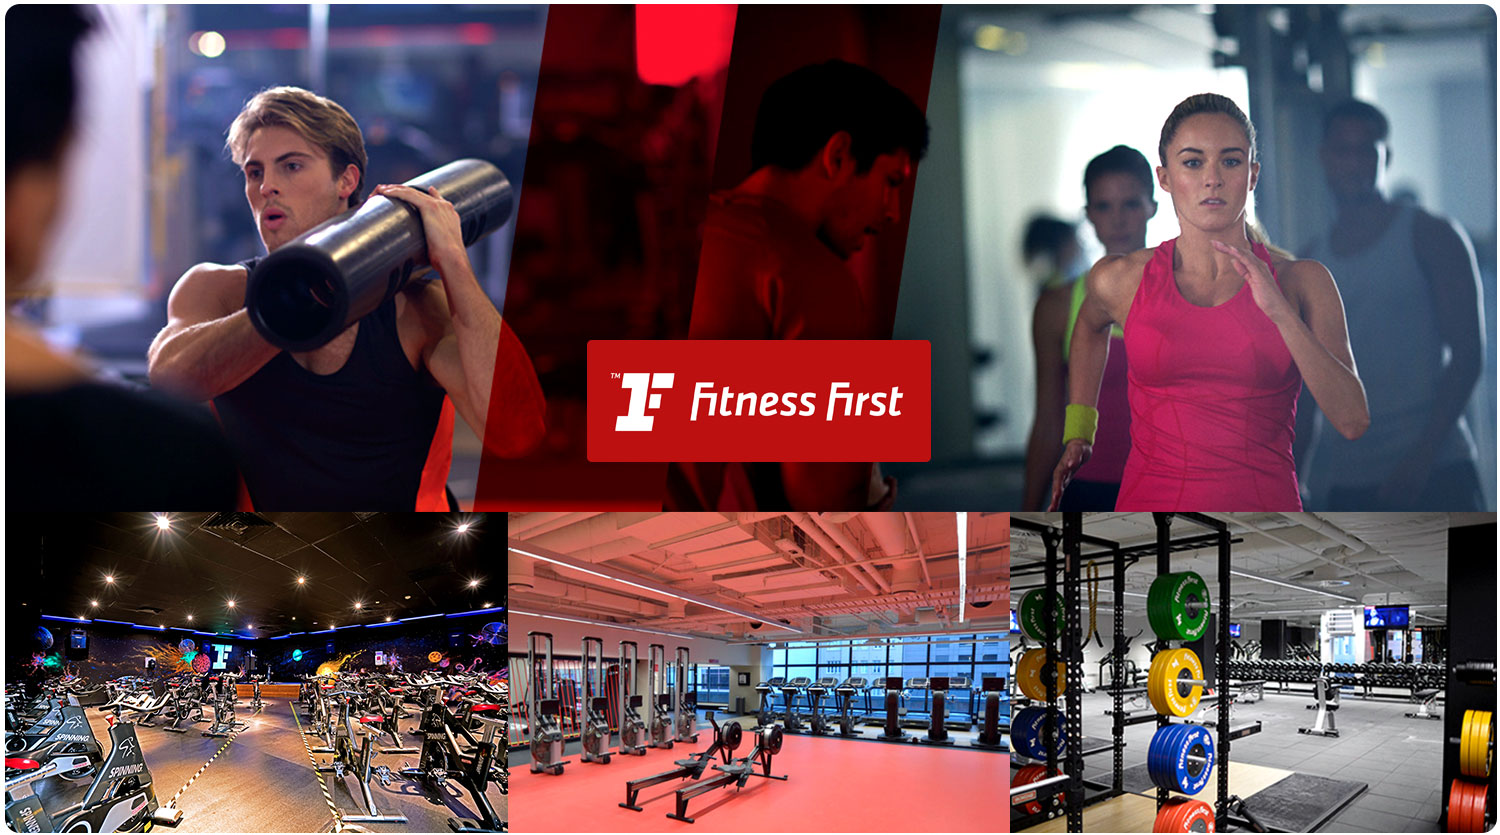 Start your Fitness Journey with Fitness First with only $9.95 for 1 week at Fitness First Indooroopilly. Experience our first class gym and freestyle classes inc. Zumba, Yoga, Pilates and more. Take the first step with Fitness First Indooroopilly.